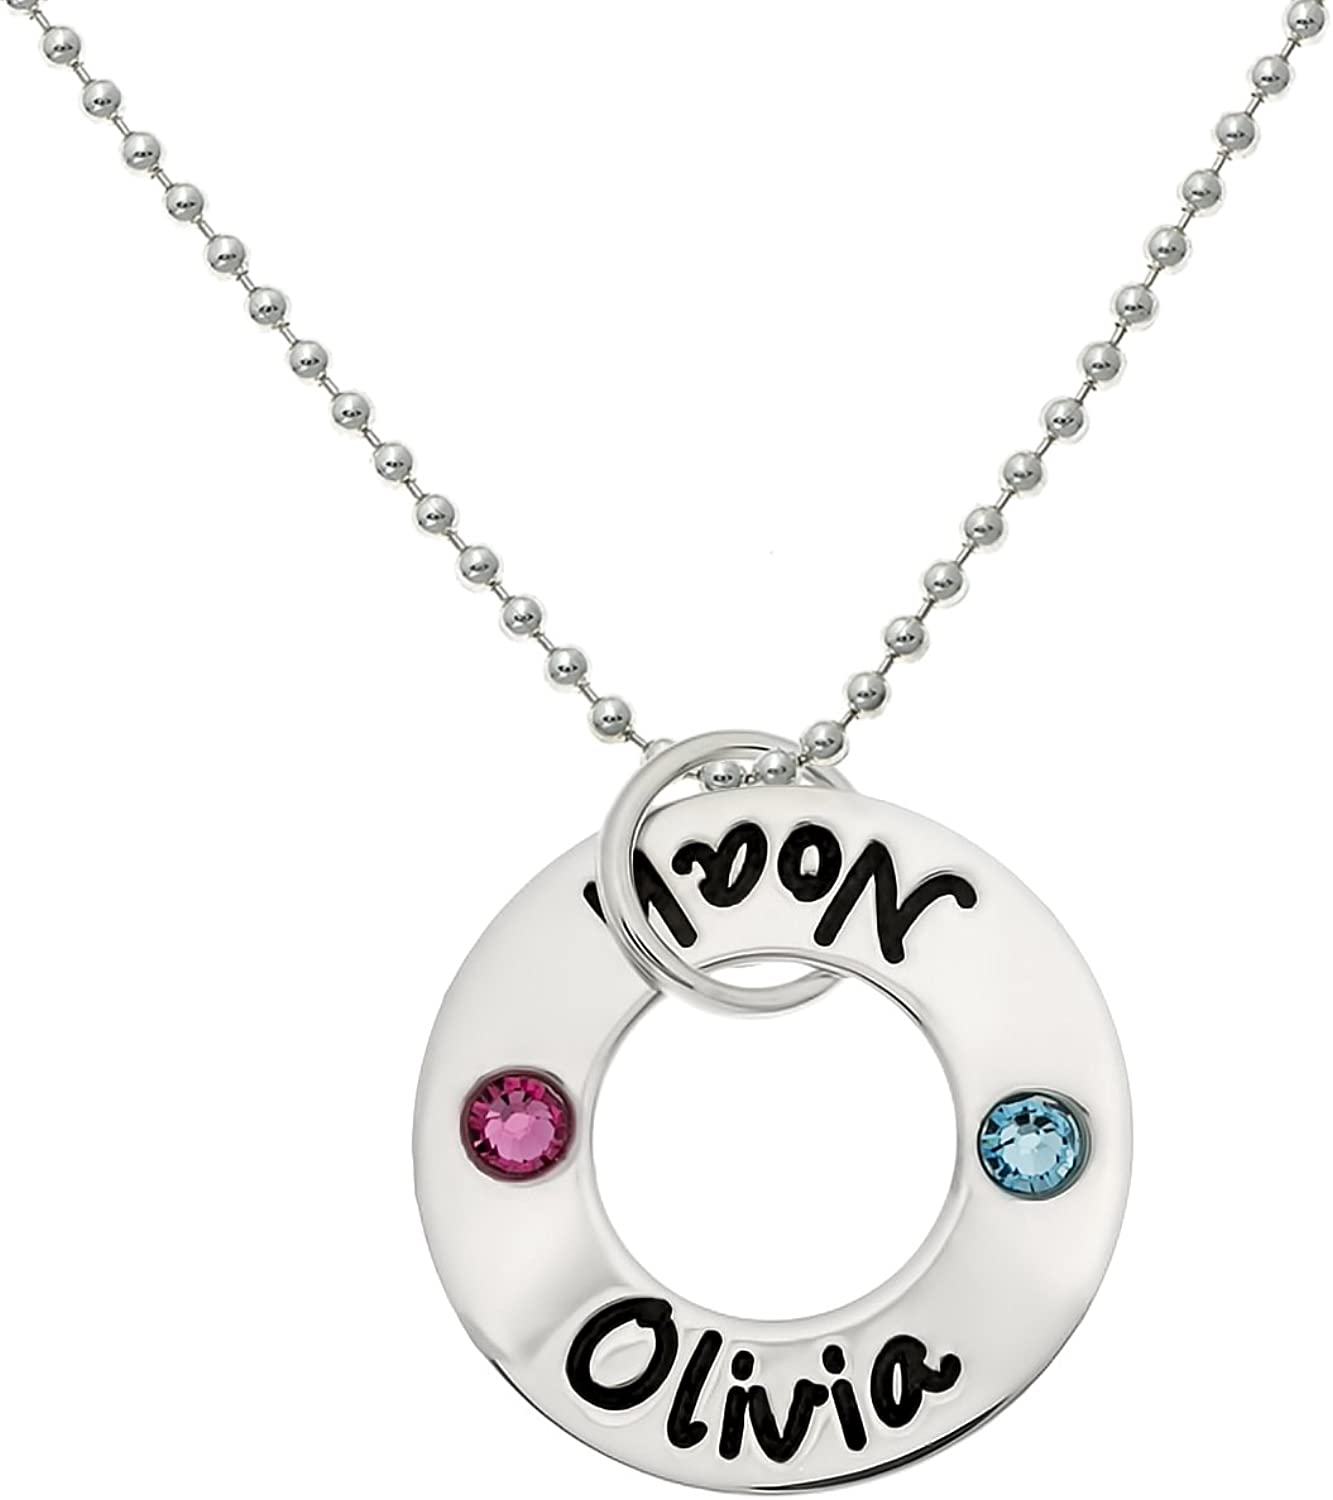 Your Choice Of 925 Chain Wife Grandmother Square Lucky Two Sterling Silver Personalized Necklace Comes with 2 Customizable Charms and a Sterling Silver Heart Charm Gifts for Her Mother